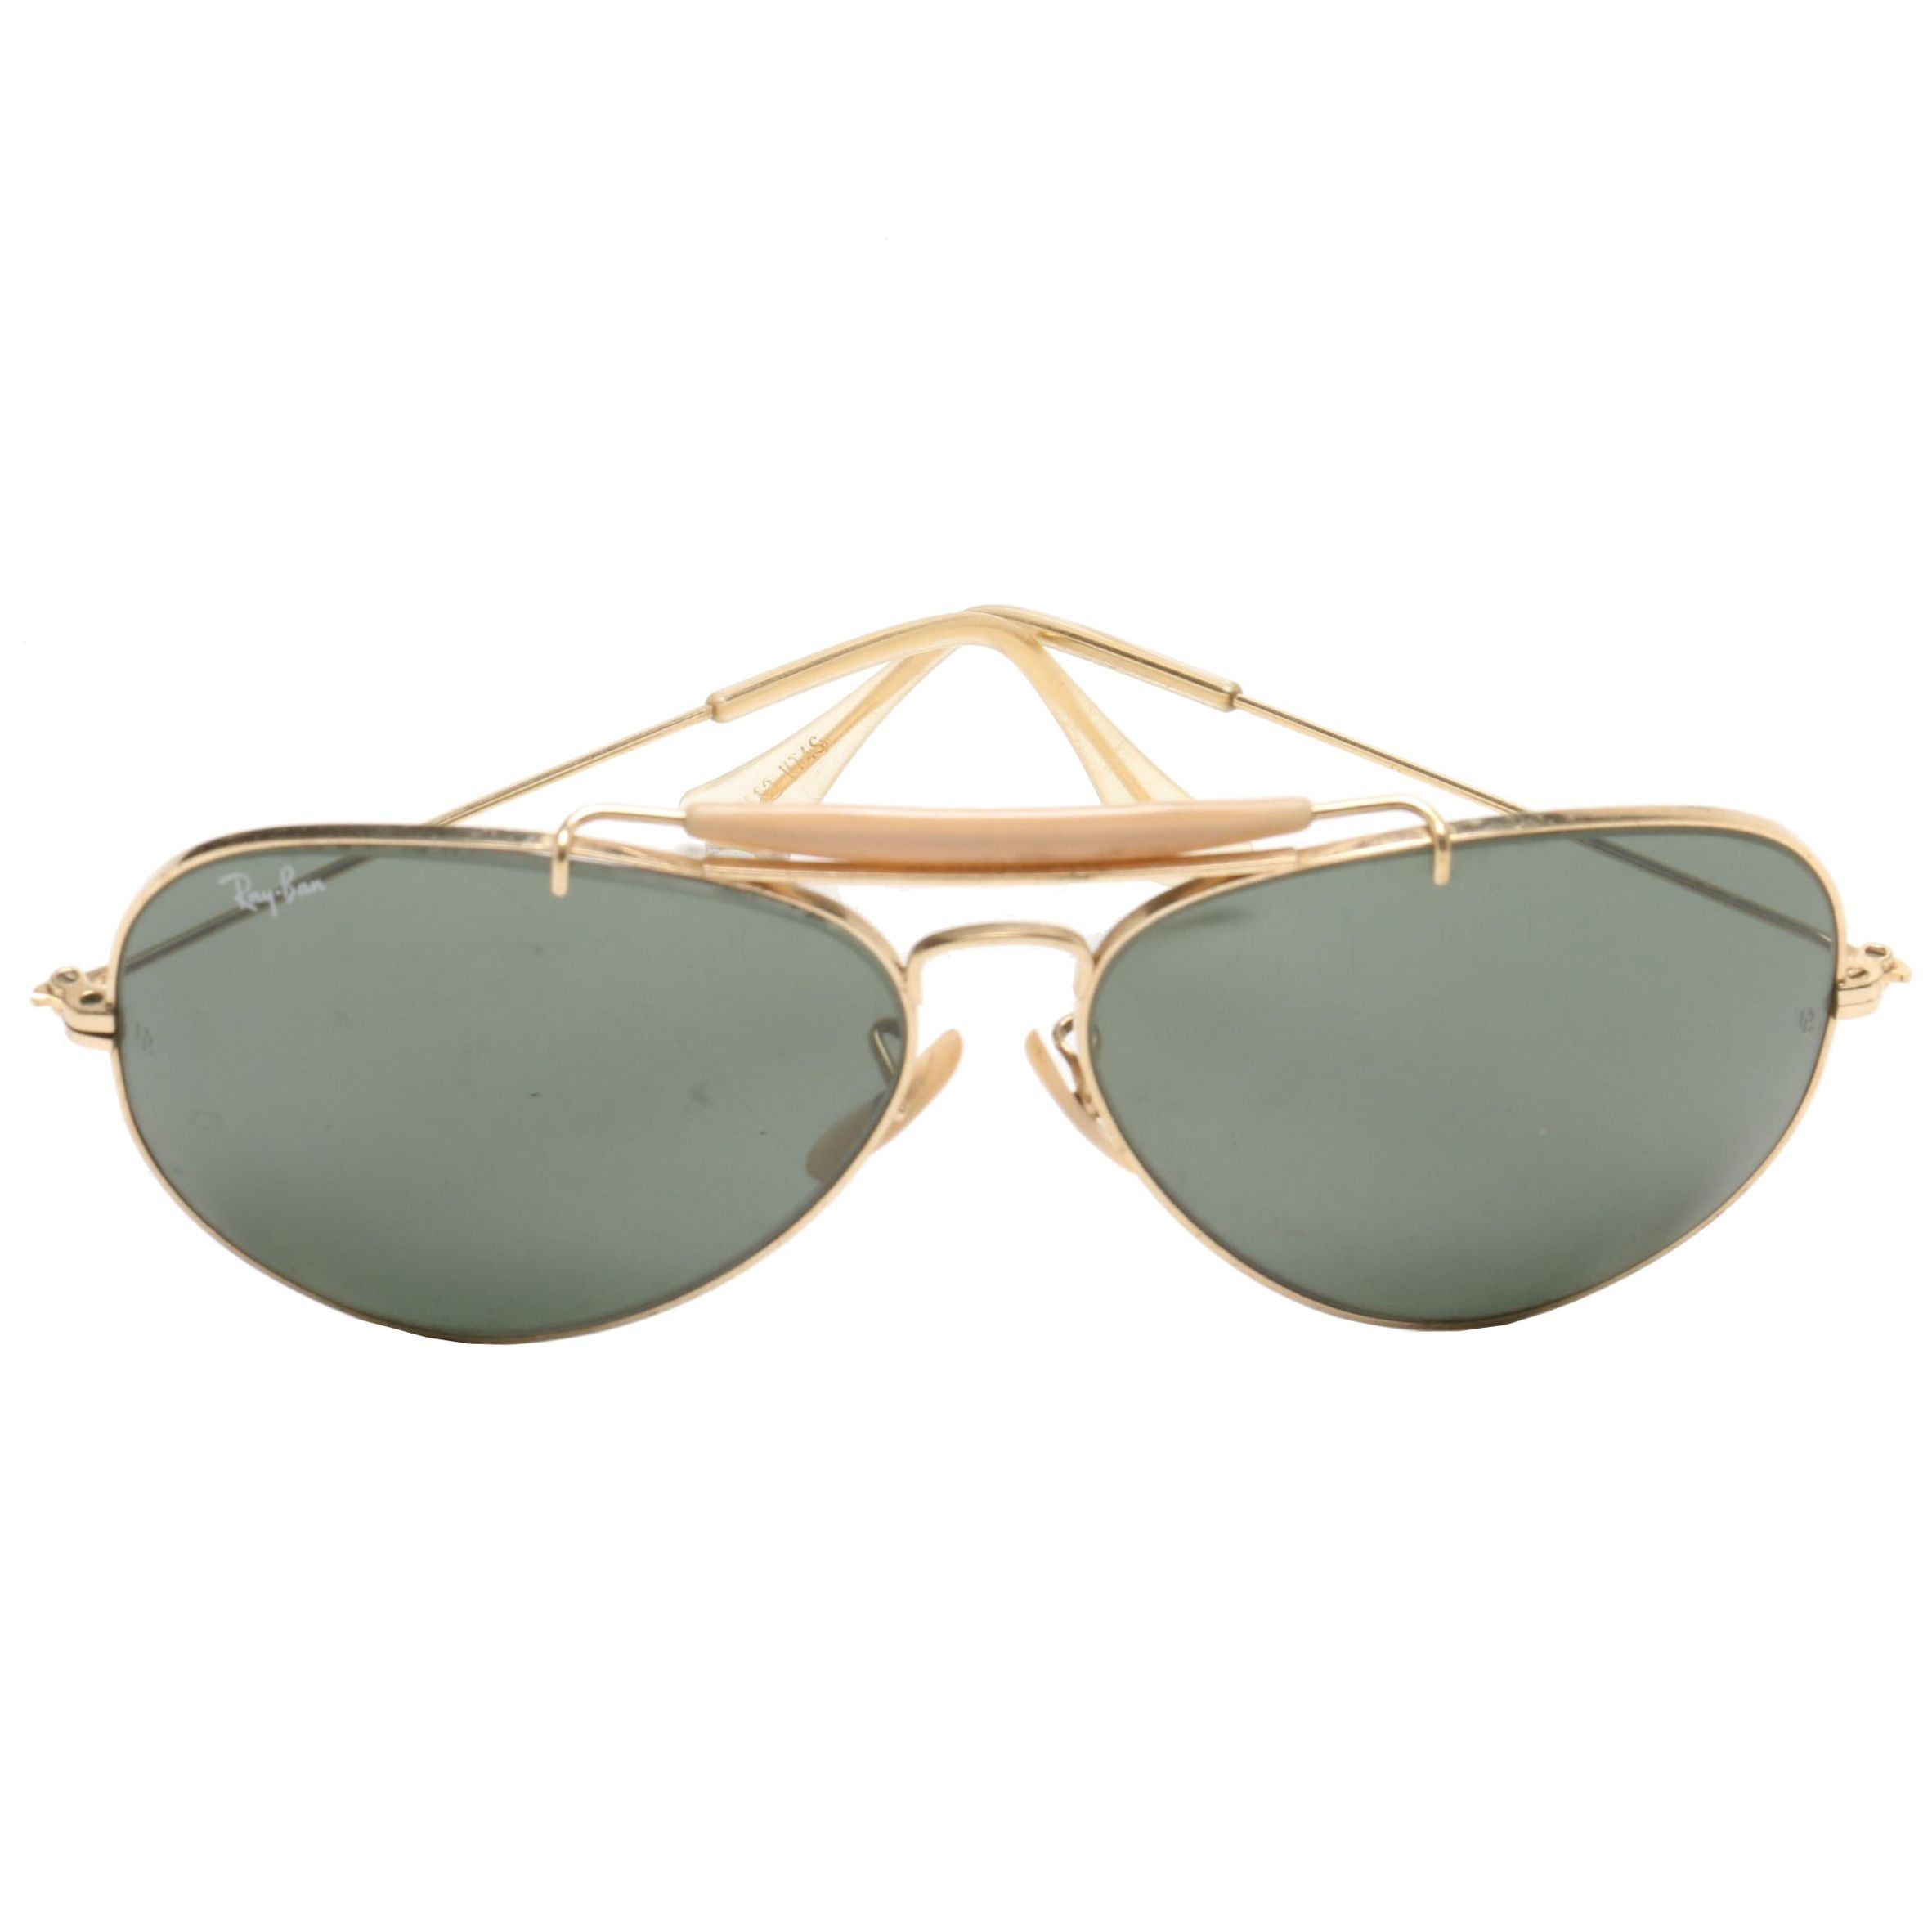 Ray-Ban Bausch & Lomb Aviator Sunglasses, Vintage